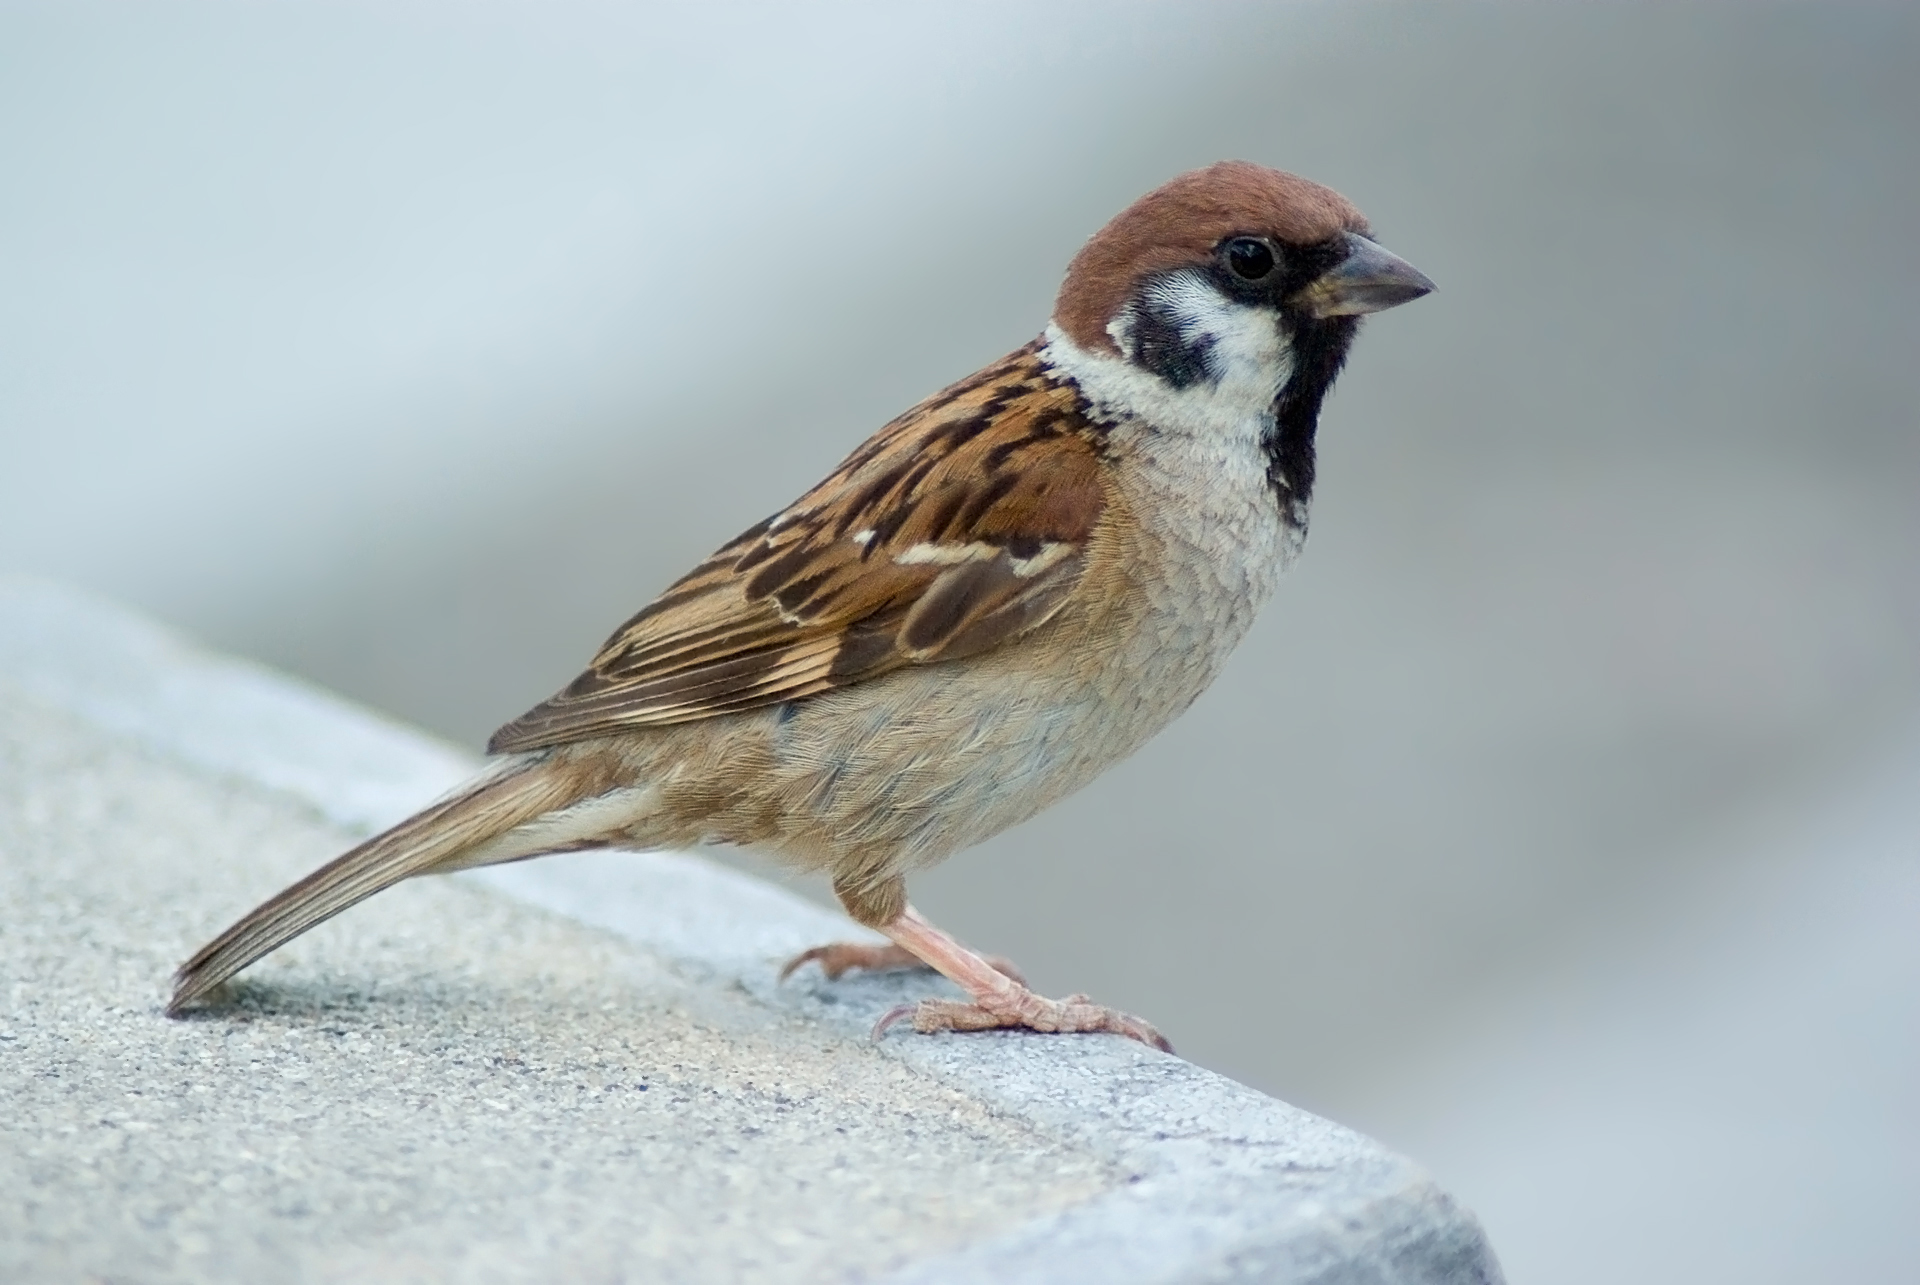 House sparrow female pictures of prostate